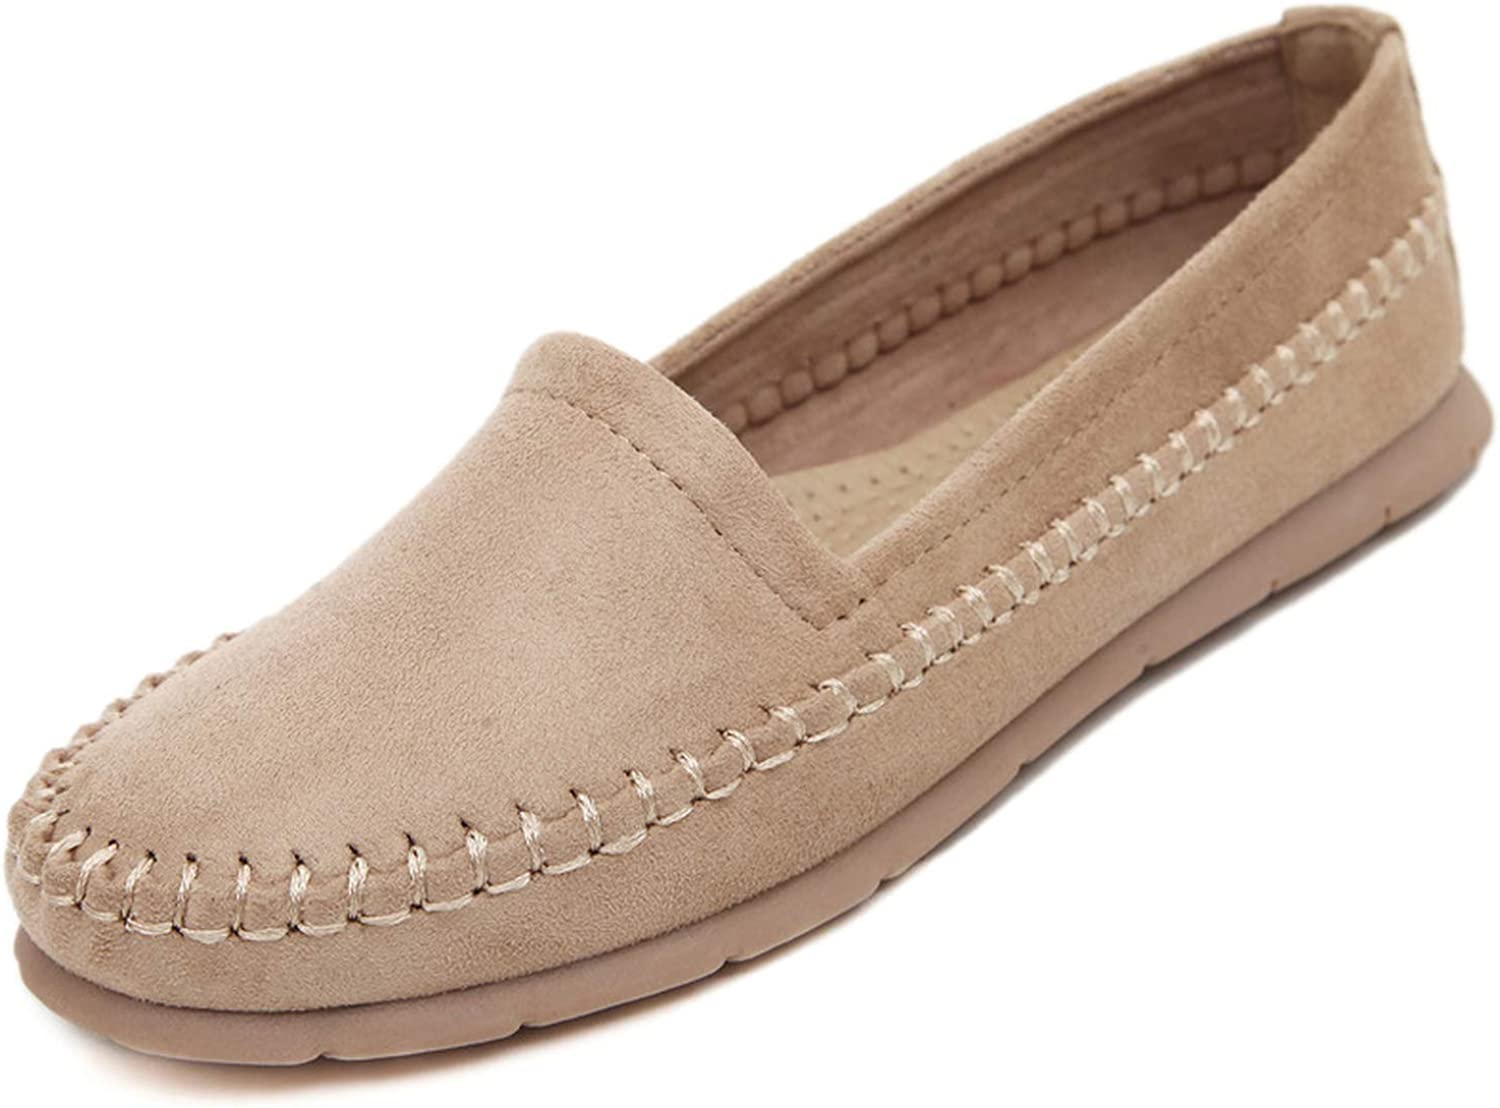 Glad You Came Spring Autumn Women's Flats Loafers Soft Gommino Slip-On Mother shoes Moccasins Casual Female Doug Driving Footwear Summer